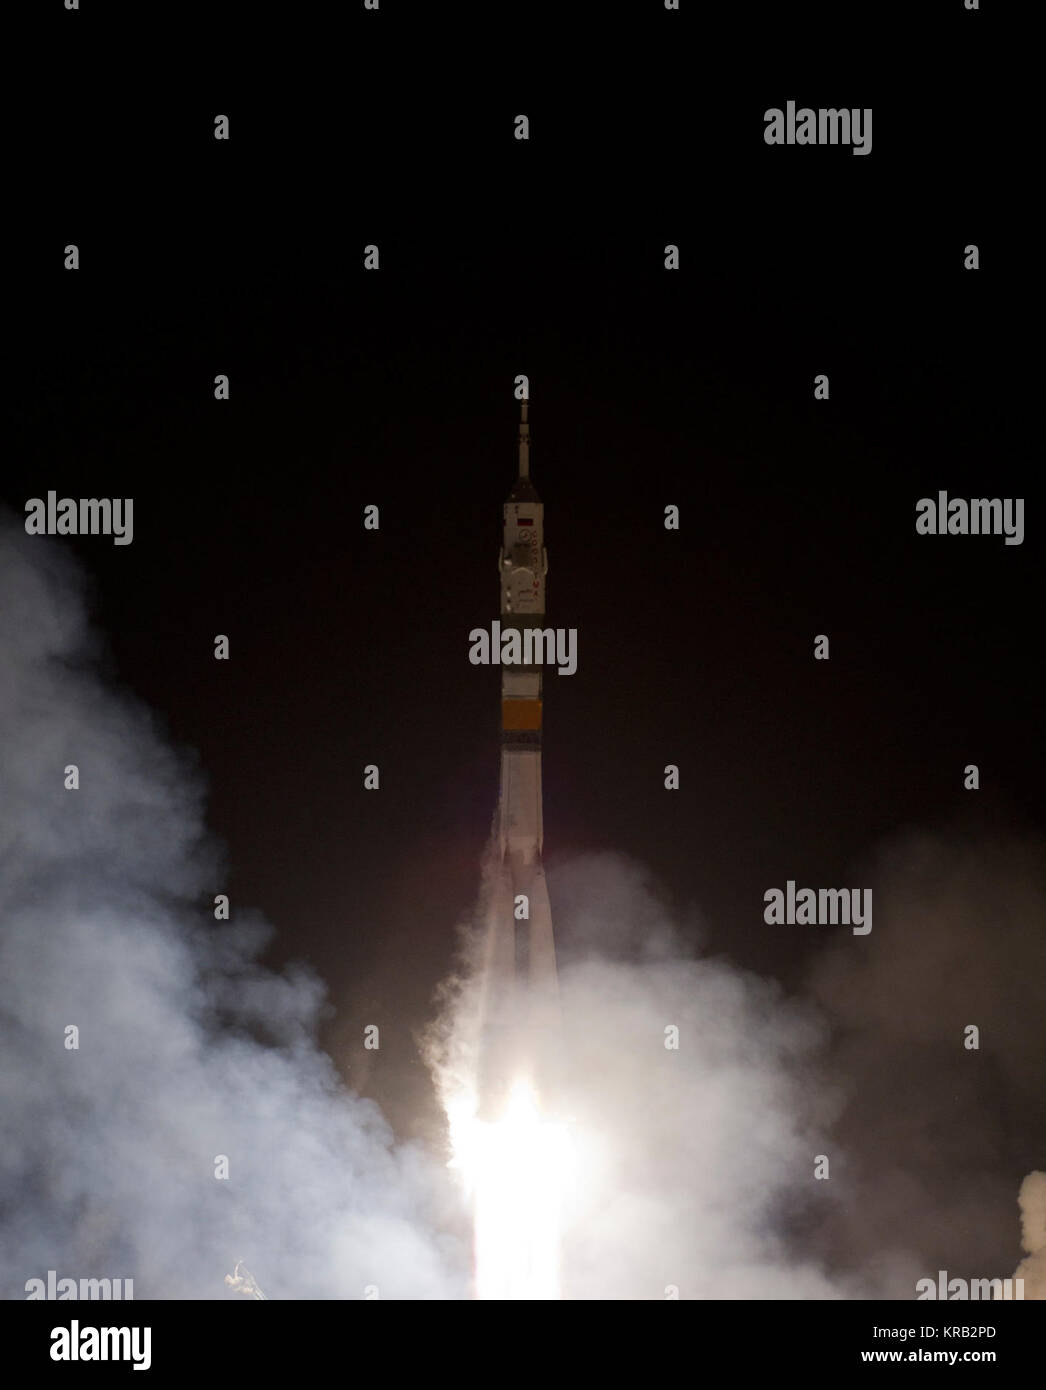 The Soyuz TMA-03M rocket launches from the Baikonur Cosmodrome in Kazakhstan on Wednesday, Dec. 21, 2011 carrying - Stock Image